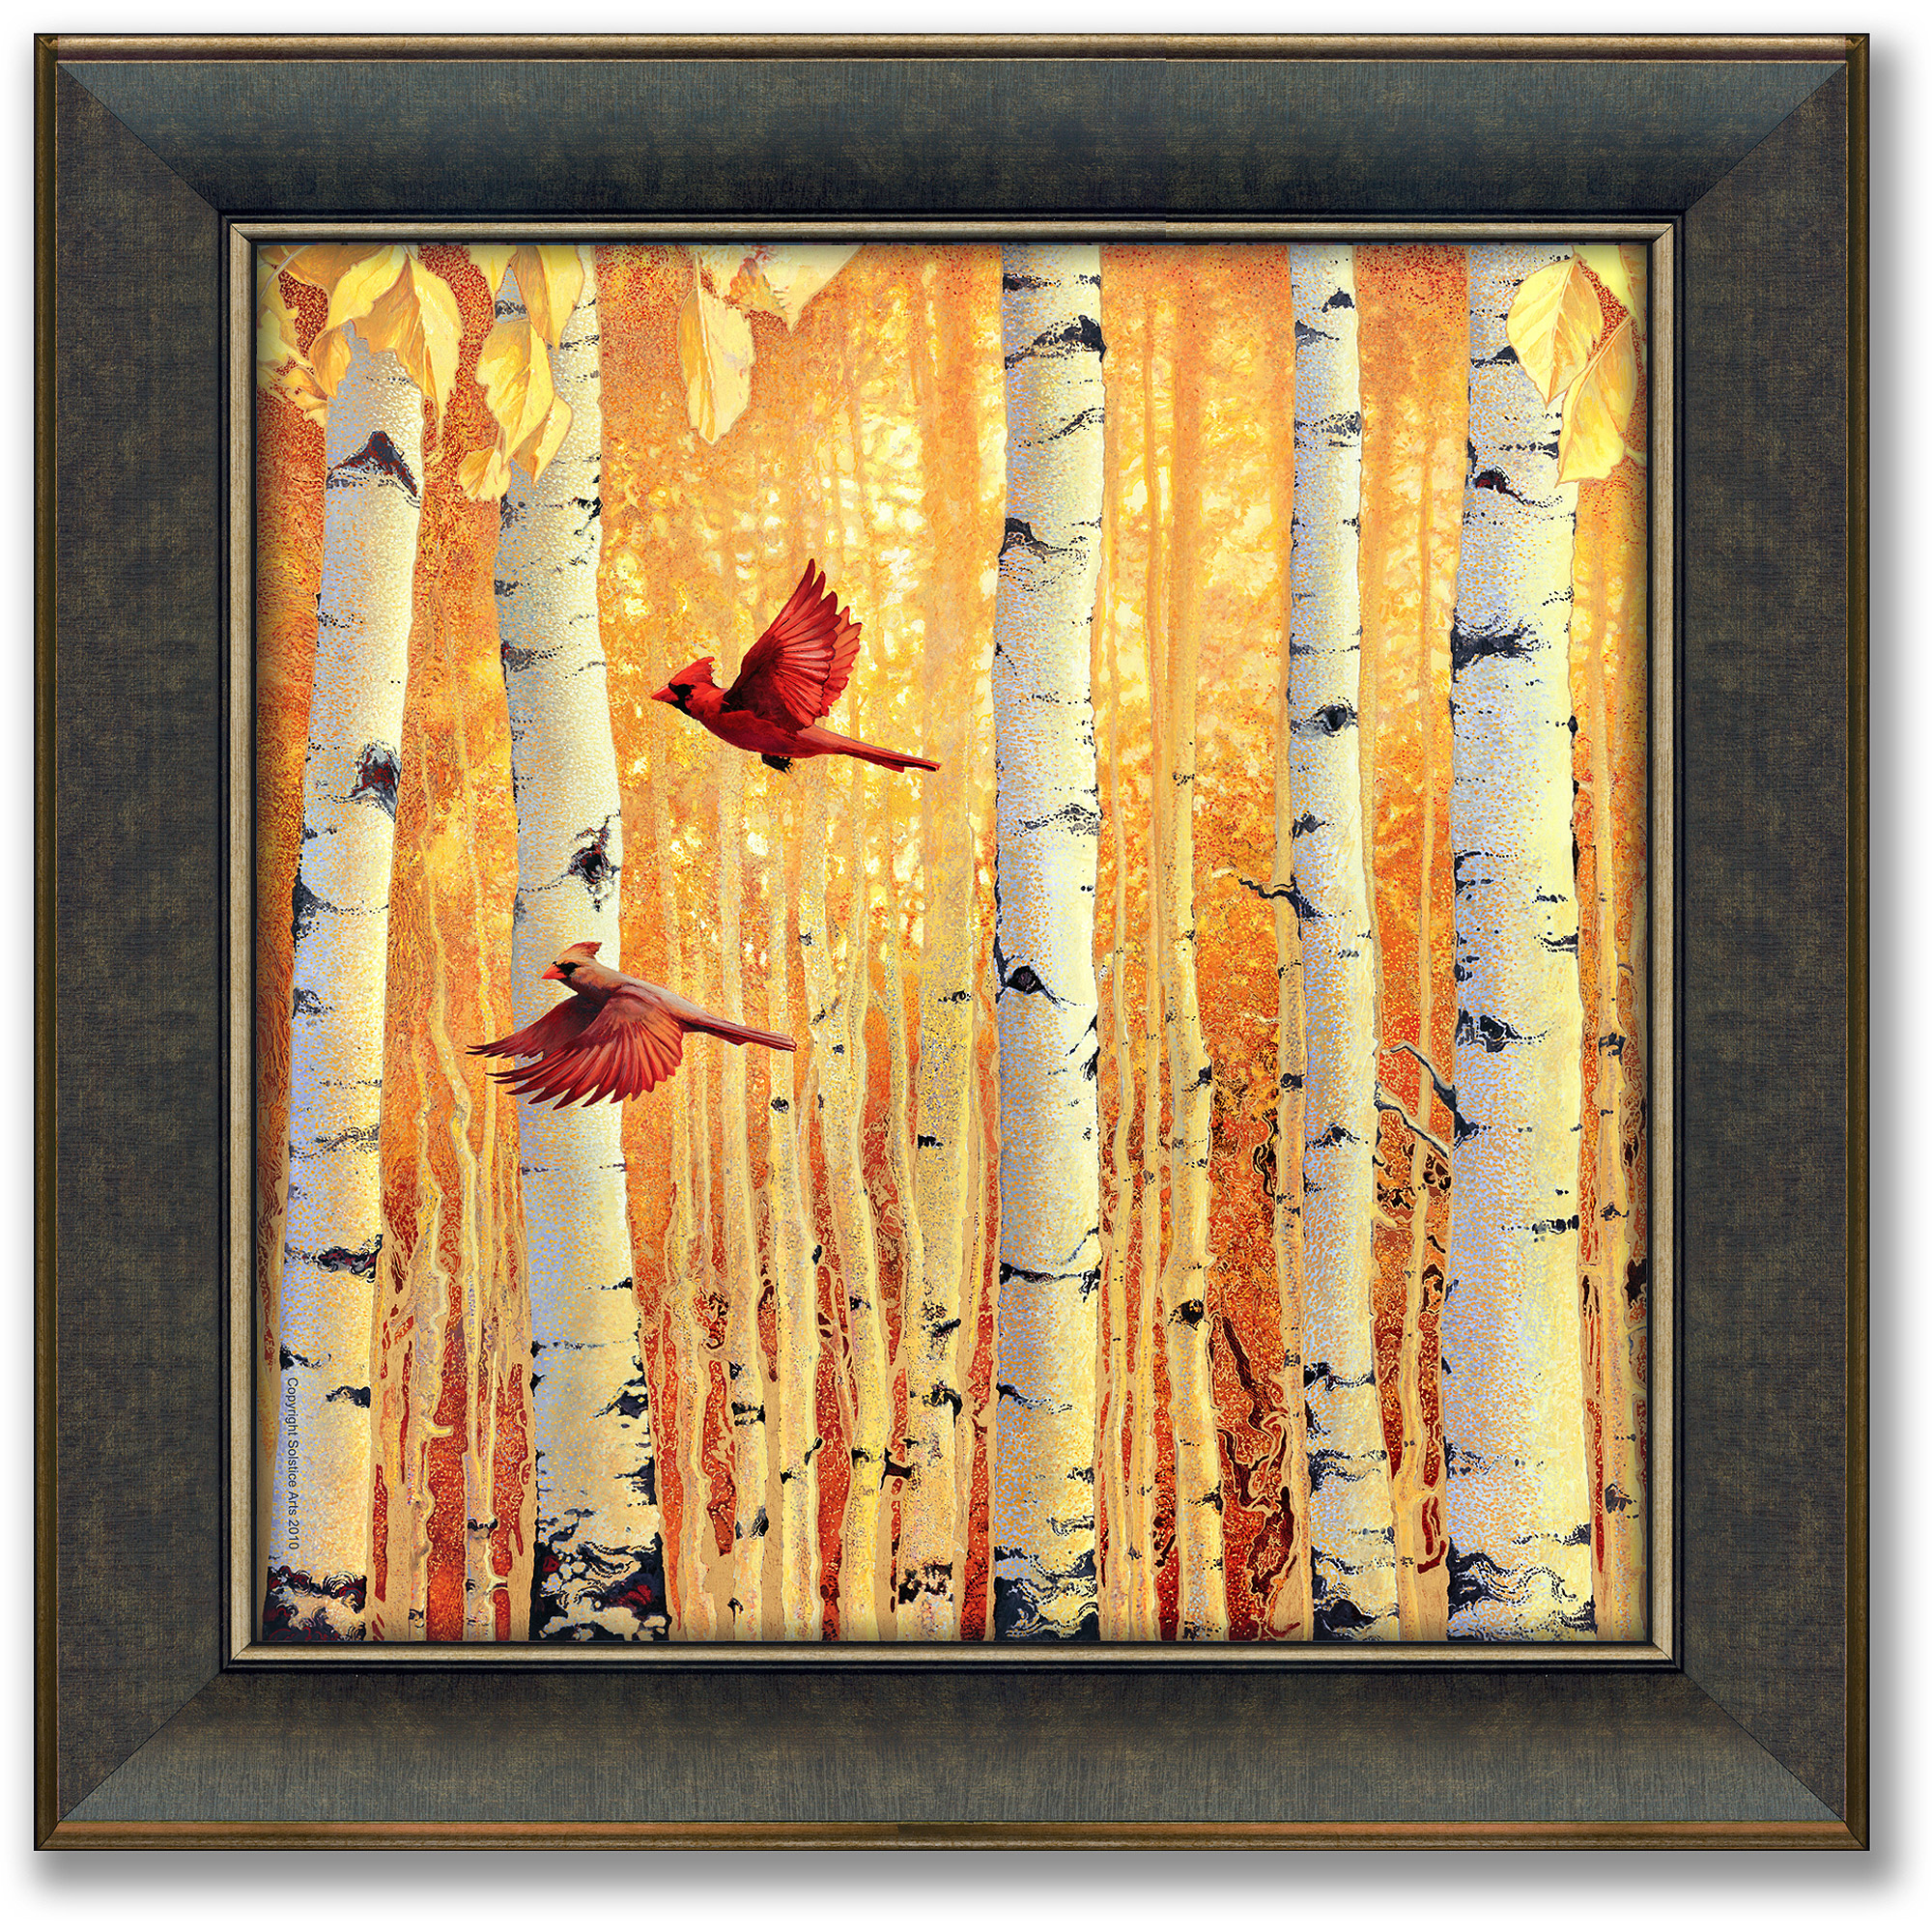 Personal-Prints Fall in Love Framed Canvas Art by